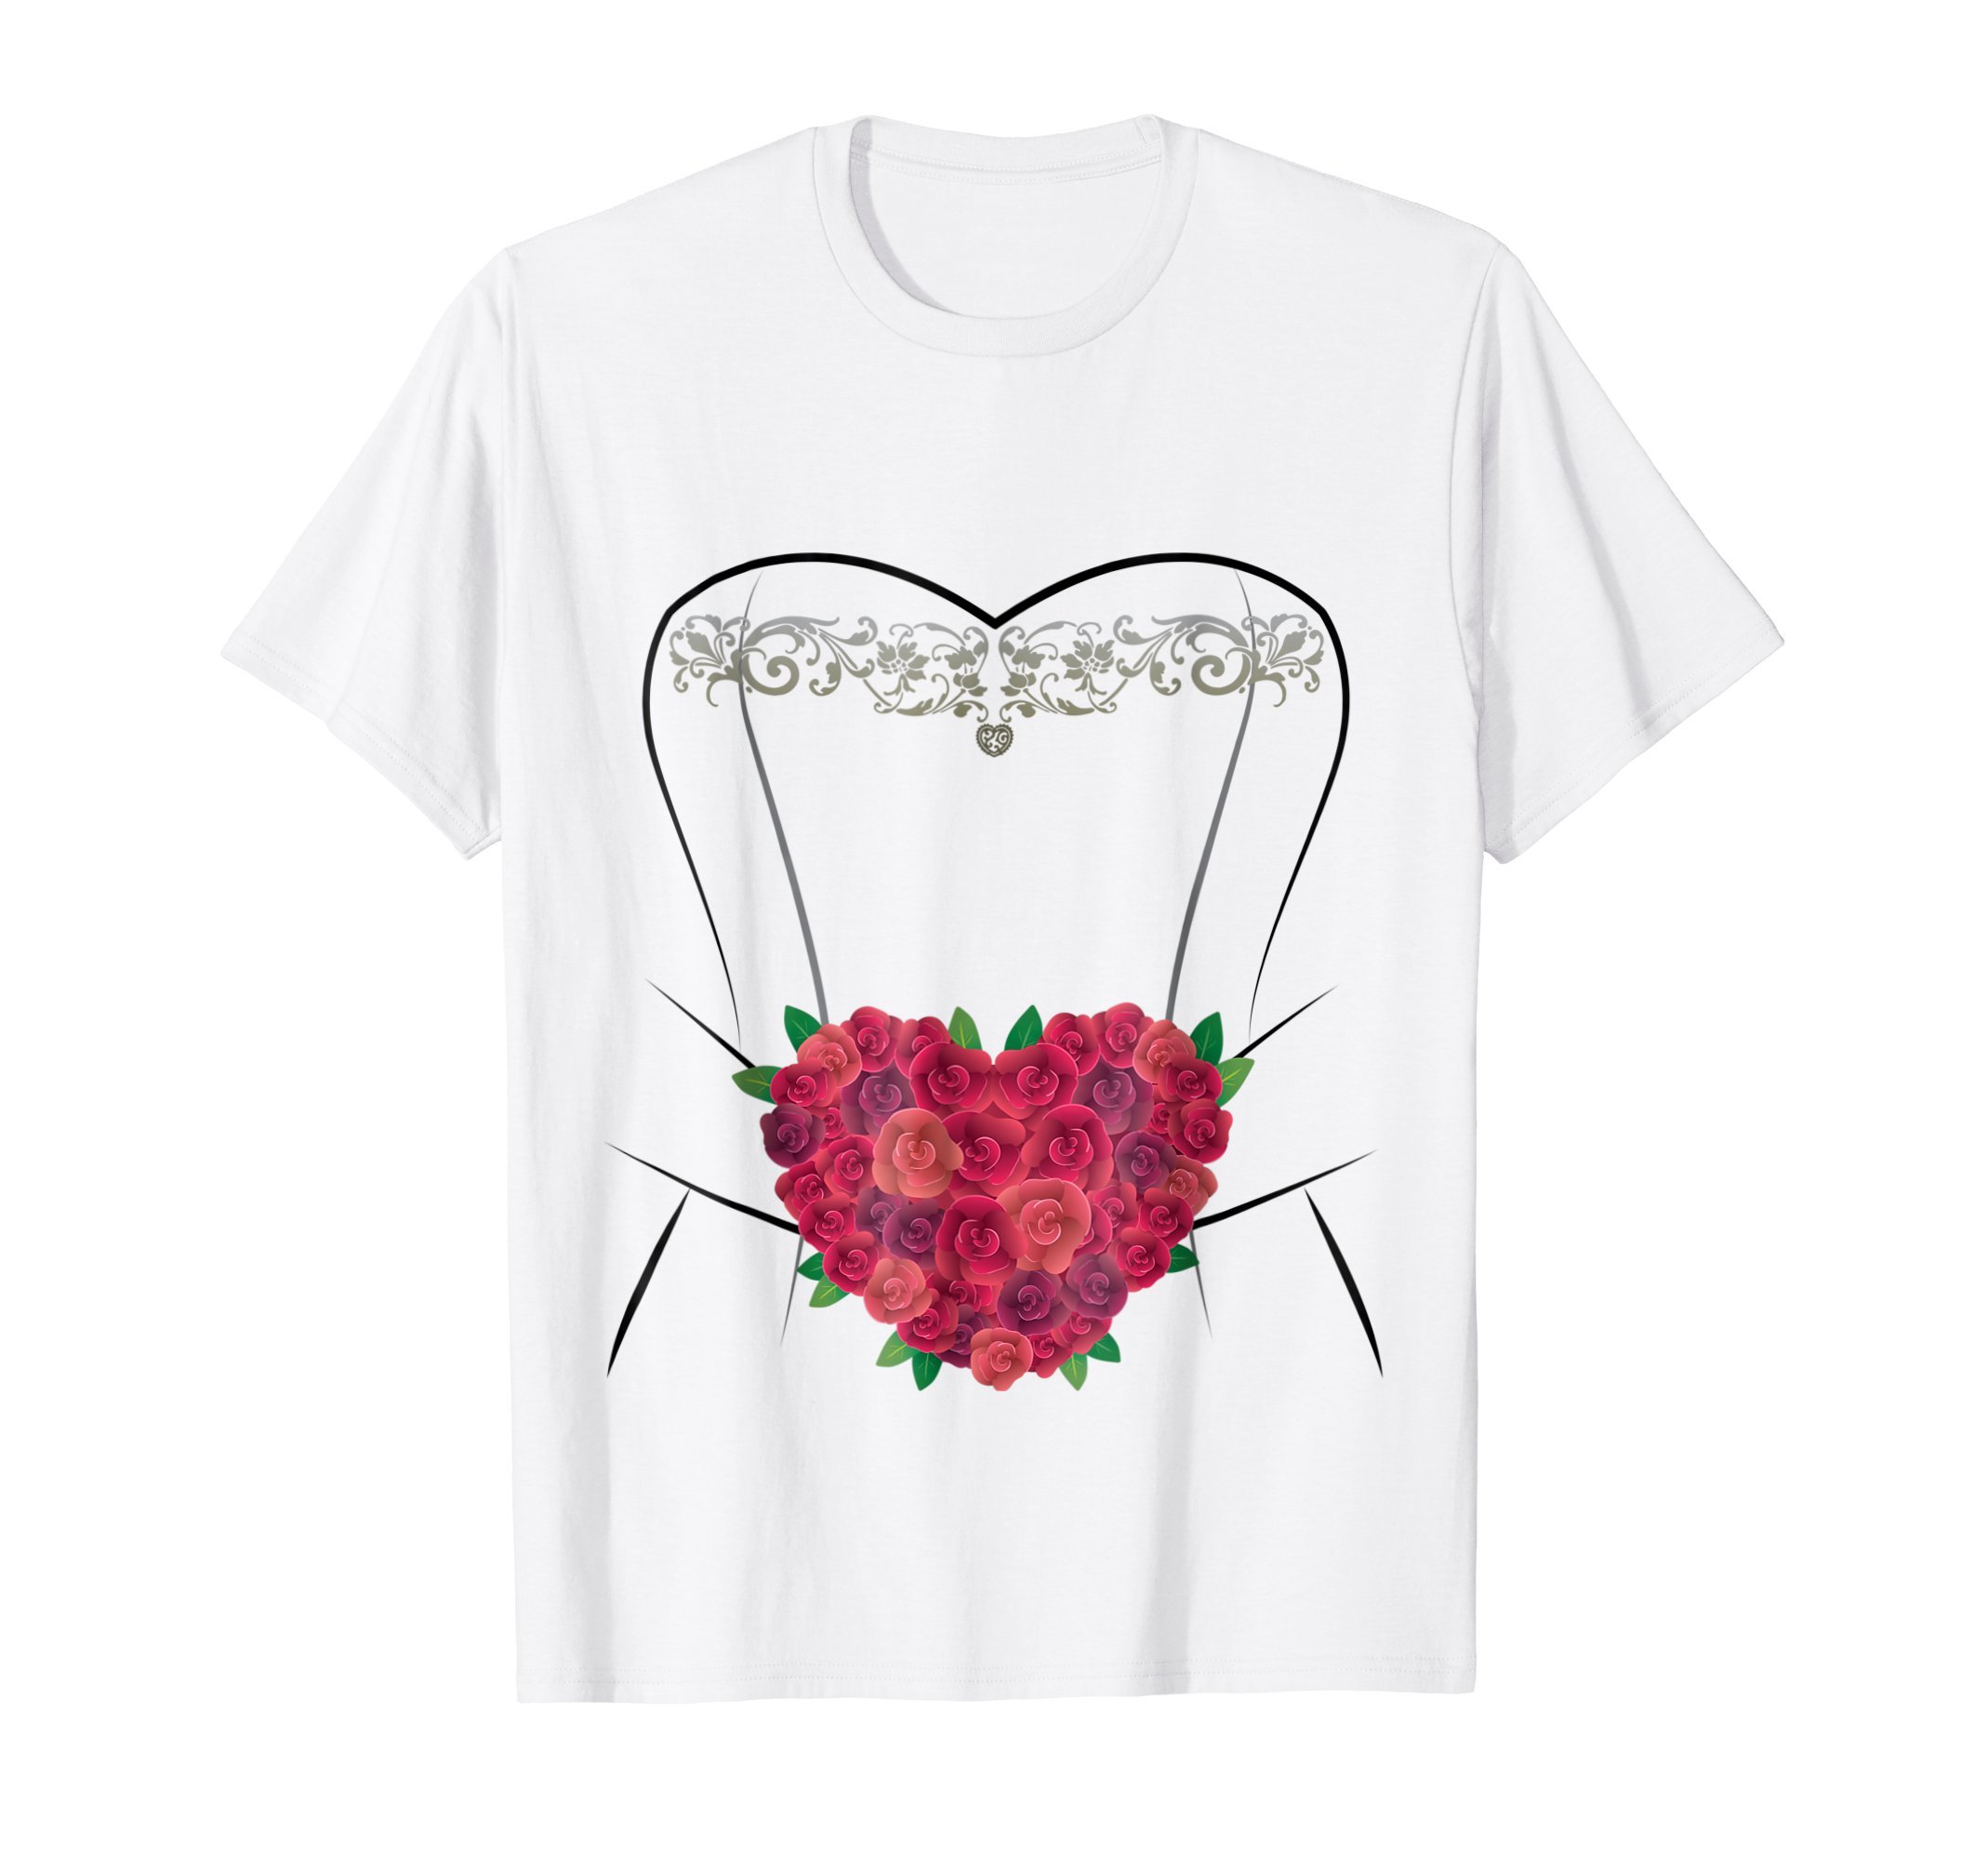 Wedding Dress T Shirt, Simple Marriage Bridal Shower Gifts